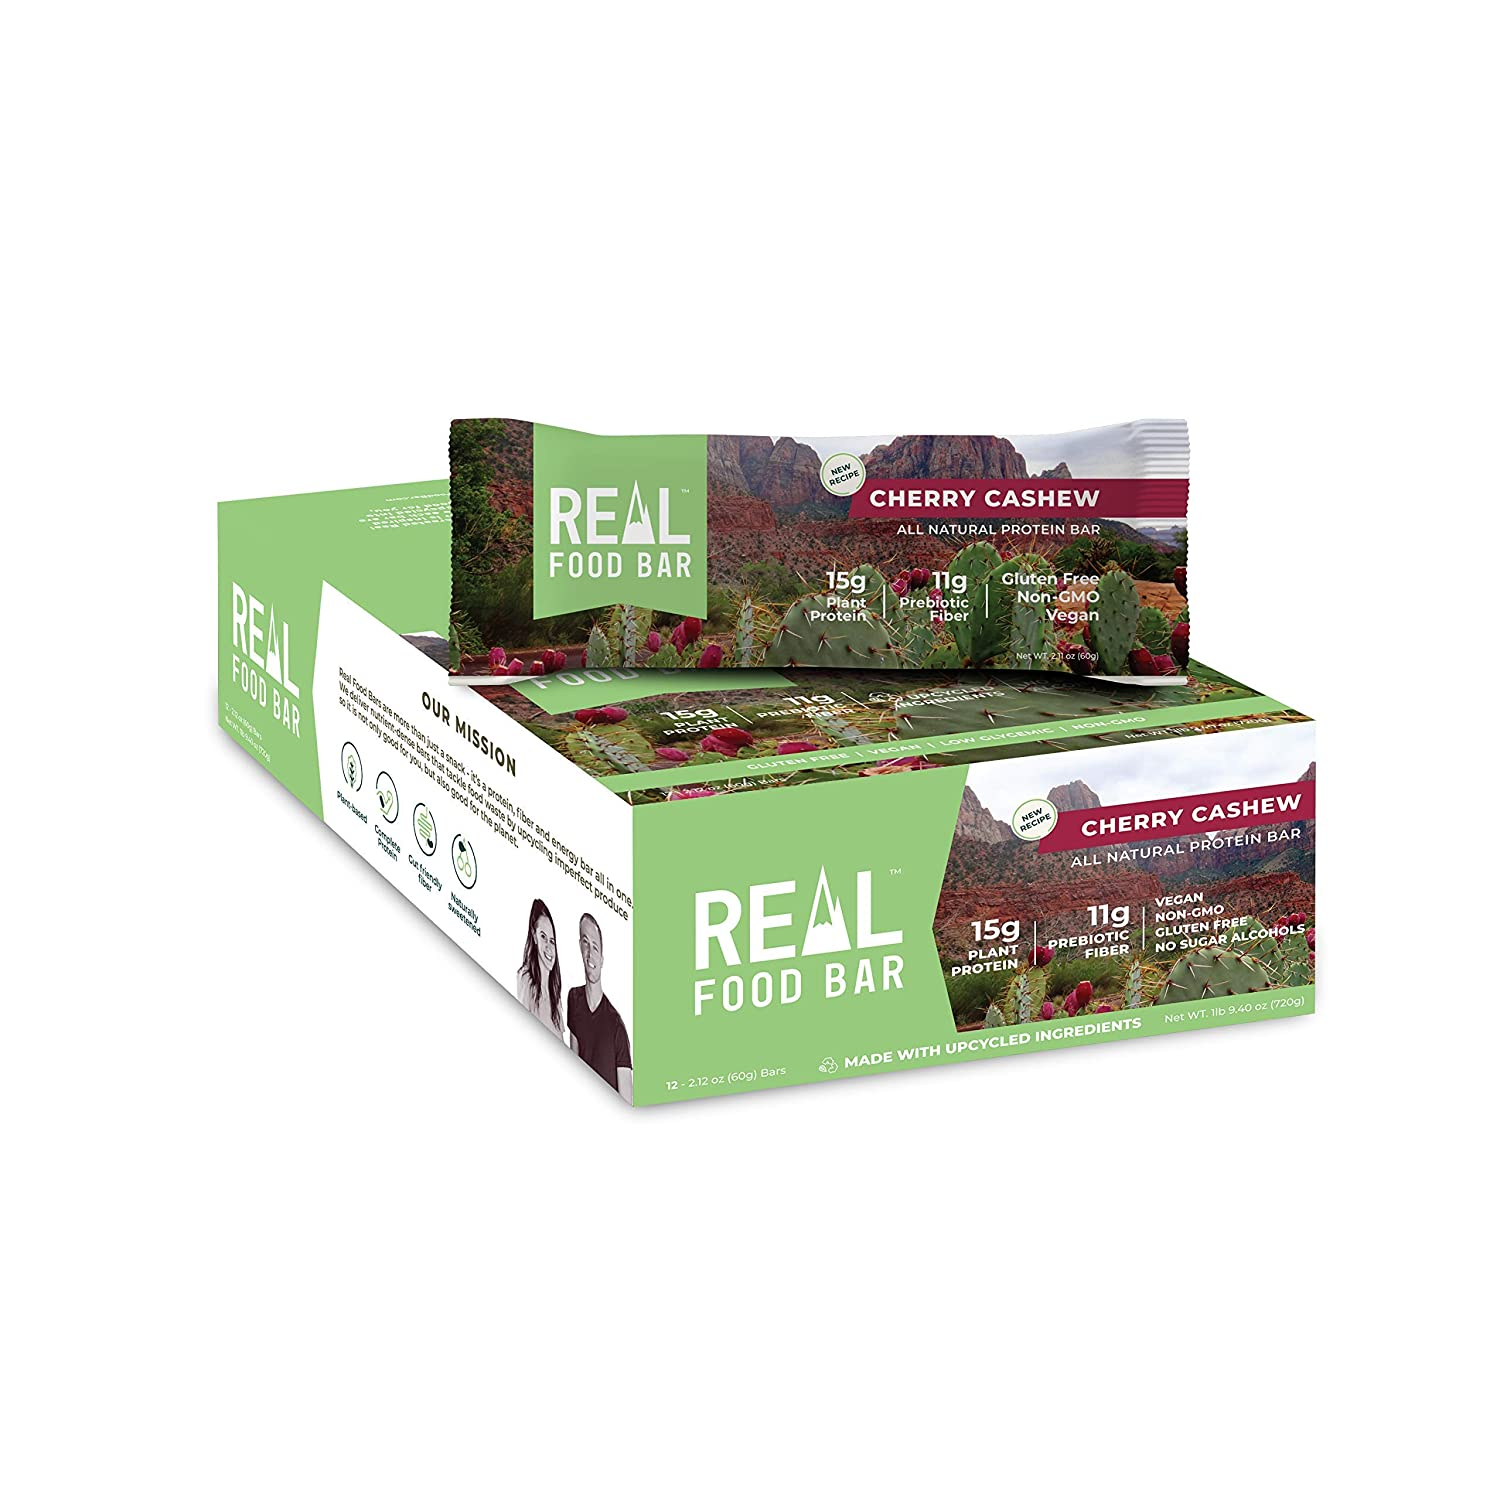 Real Food Bar – Plant based Protein Bar, Cherry Cashew, 15g Protein, 12 Bars   High Energy, Organic Ingredients, Gluten Free, Non GMO   All Natural Tasty Health Snack